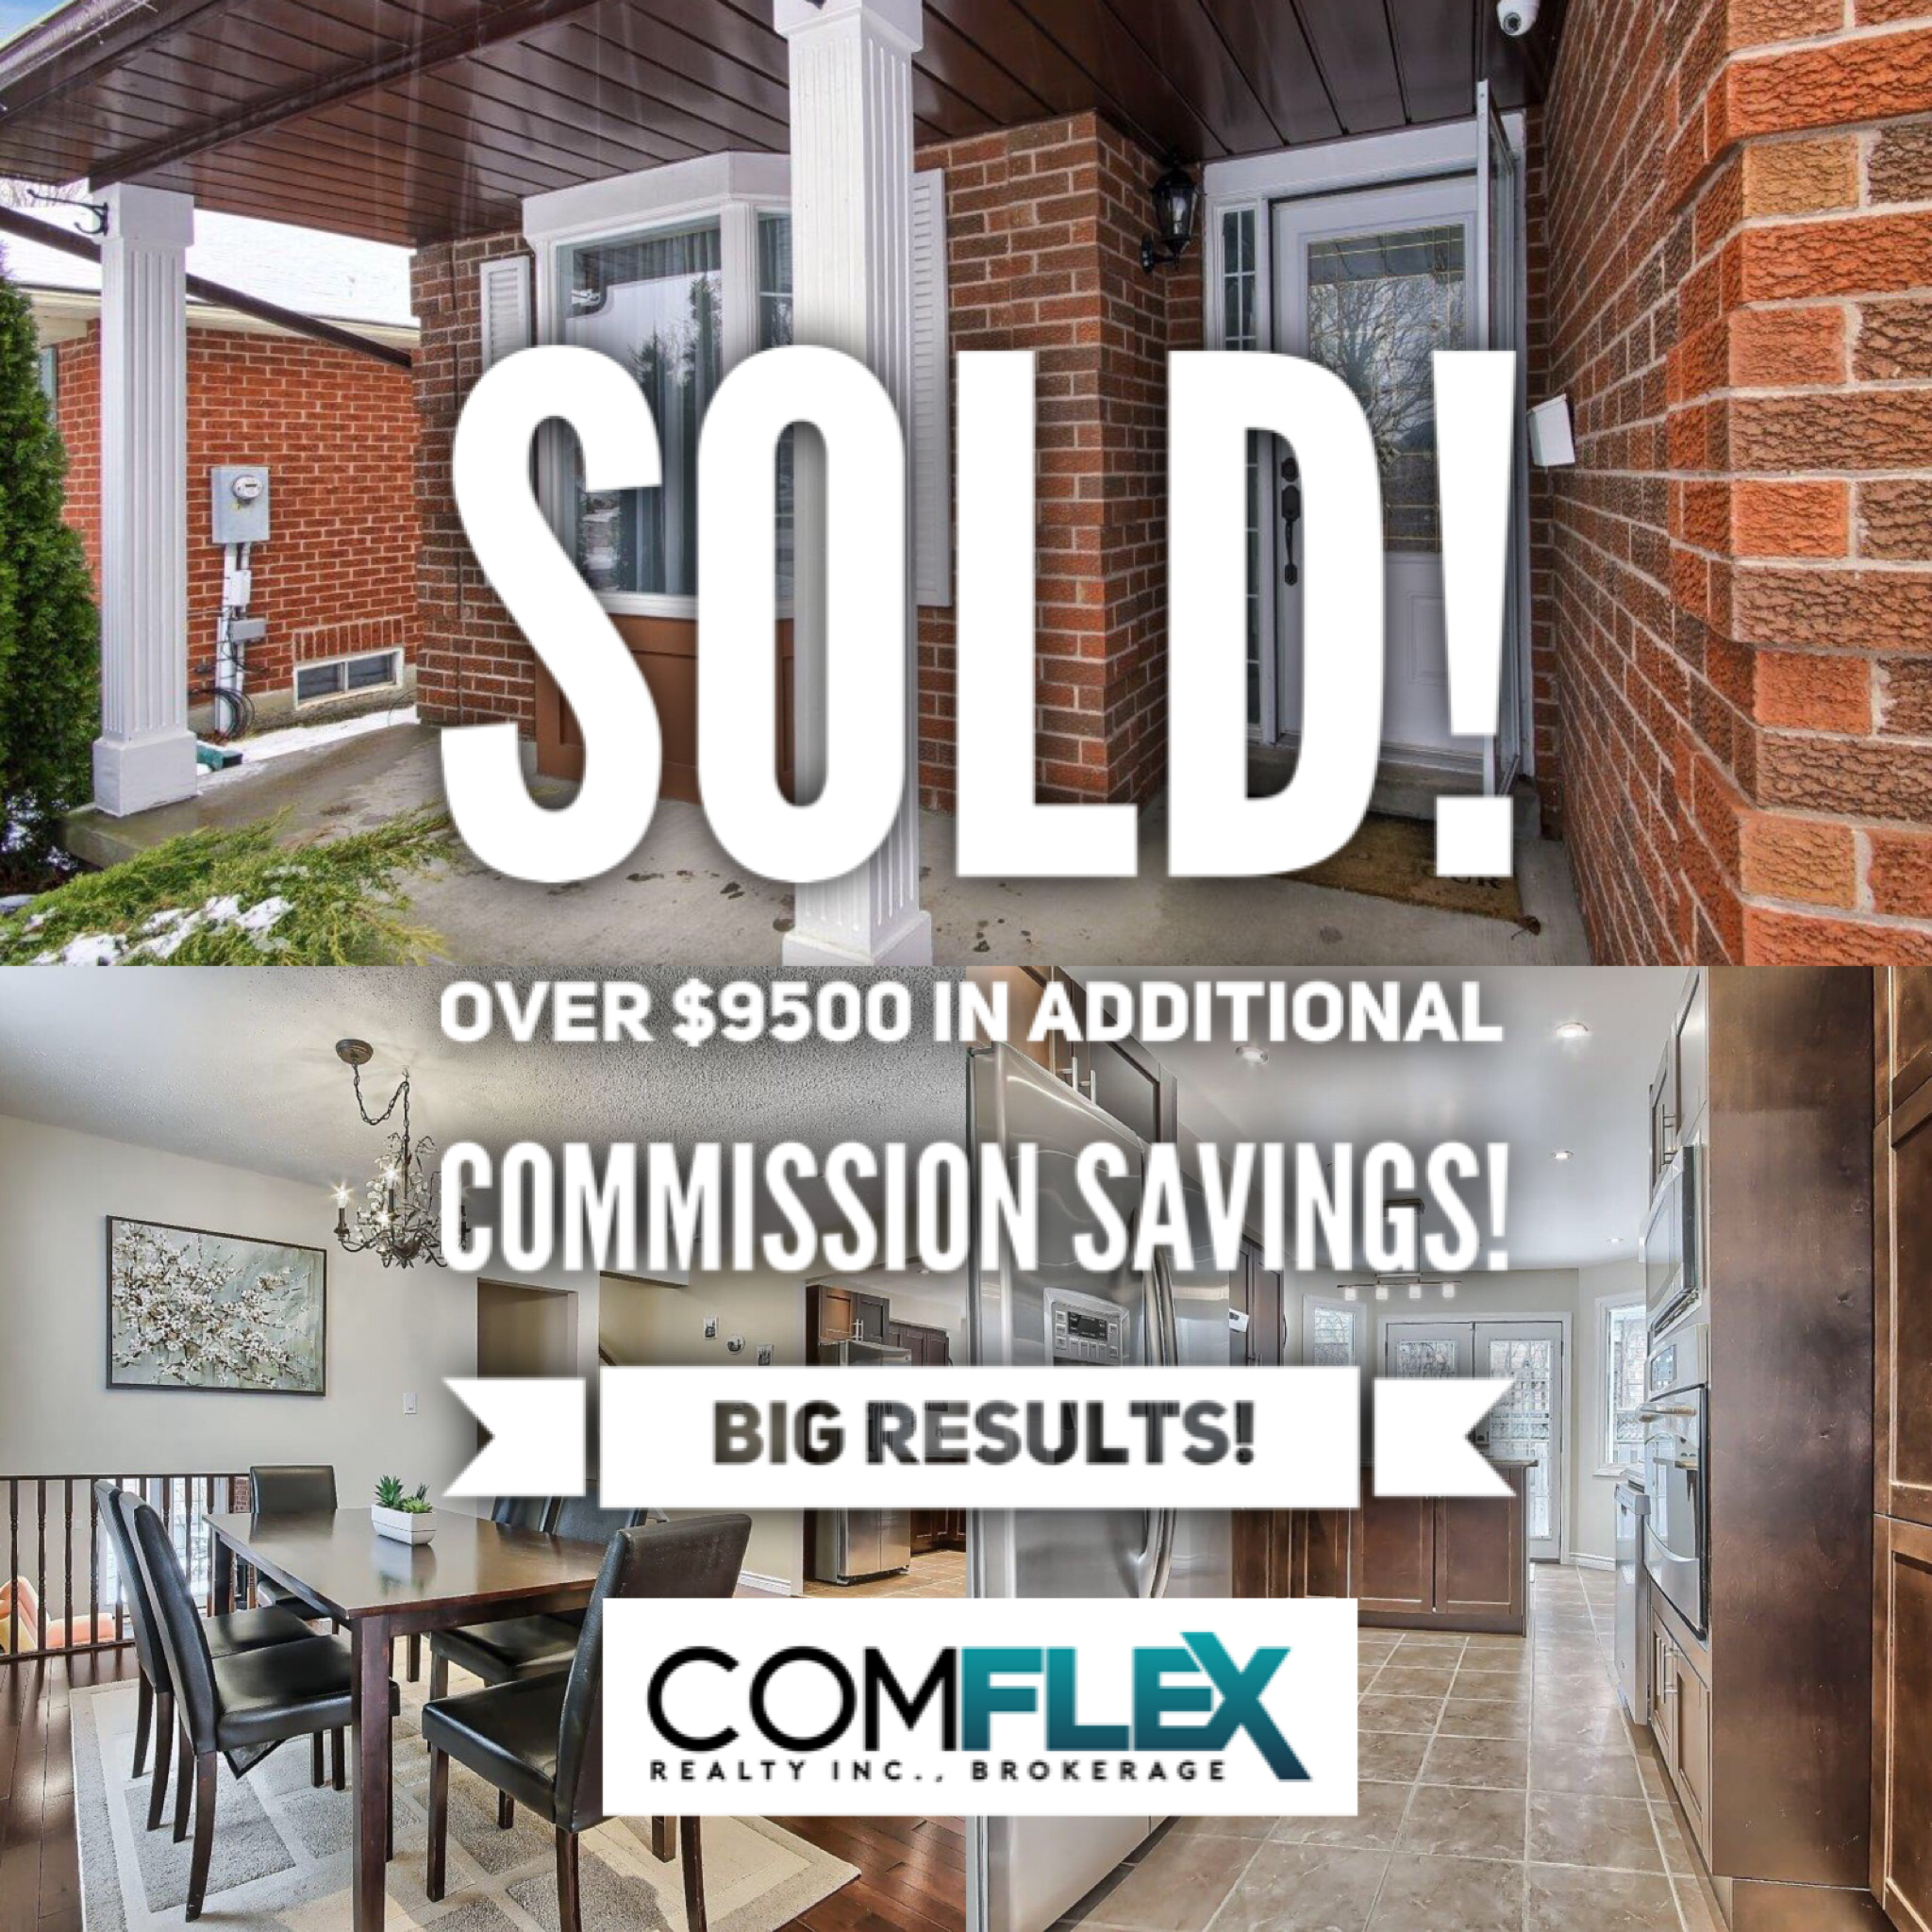 JUST SOLD! OVER $9K IN ADDITIONAL COMMISSION SAVINGS! YOU COULD BE NEXT!